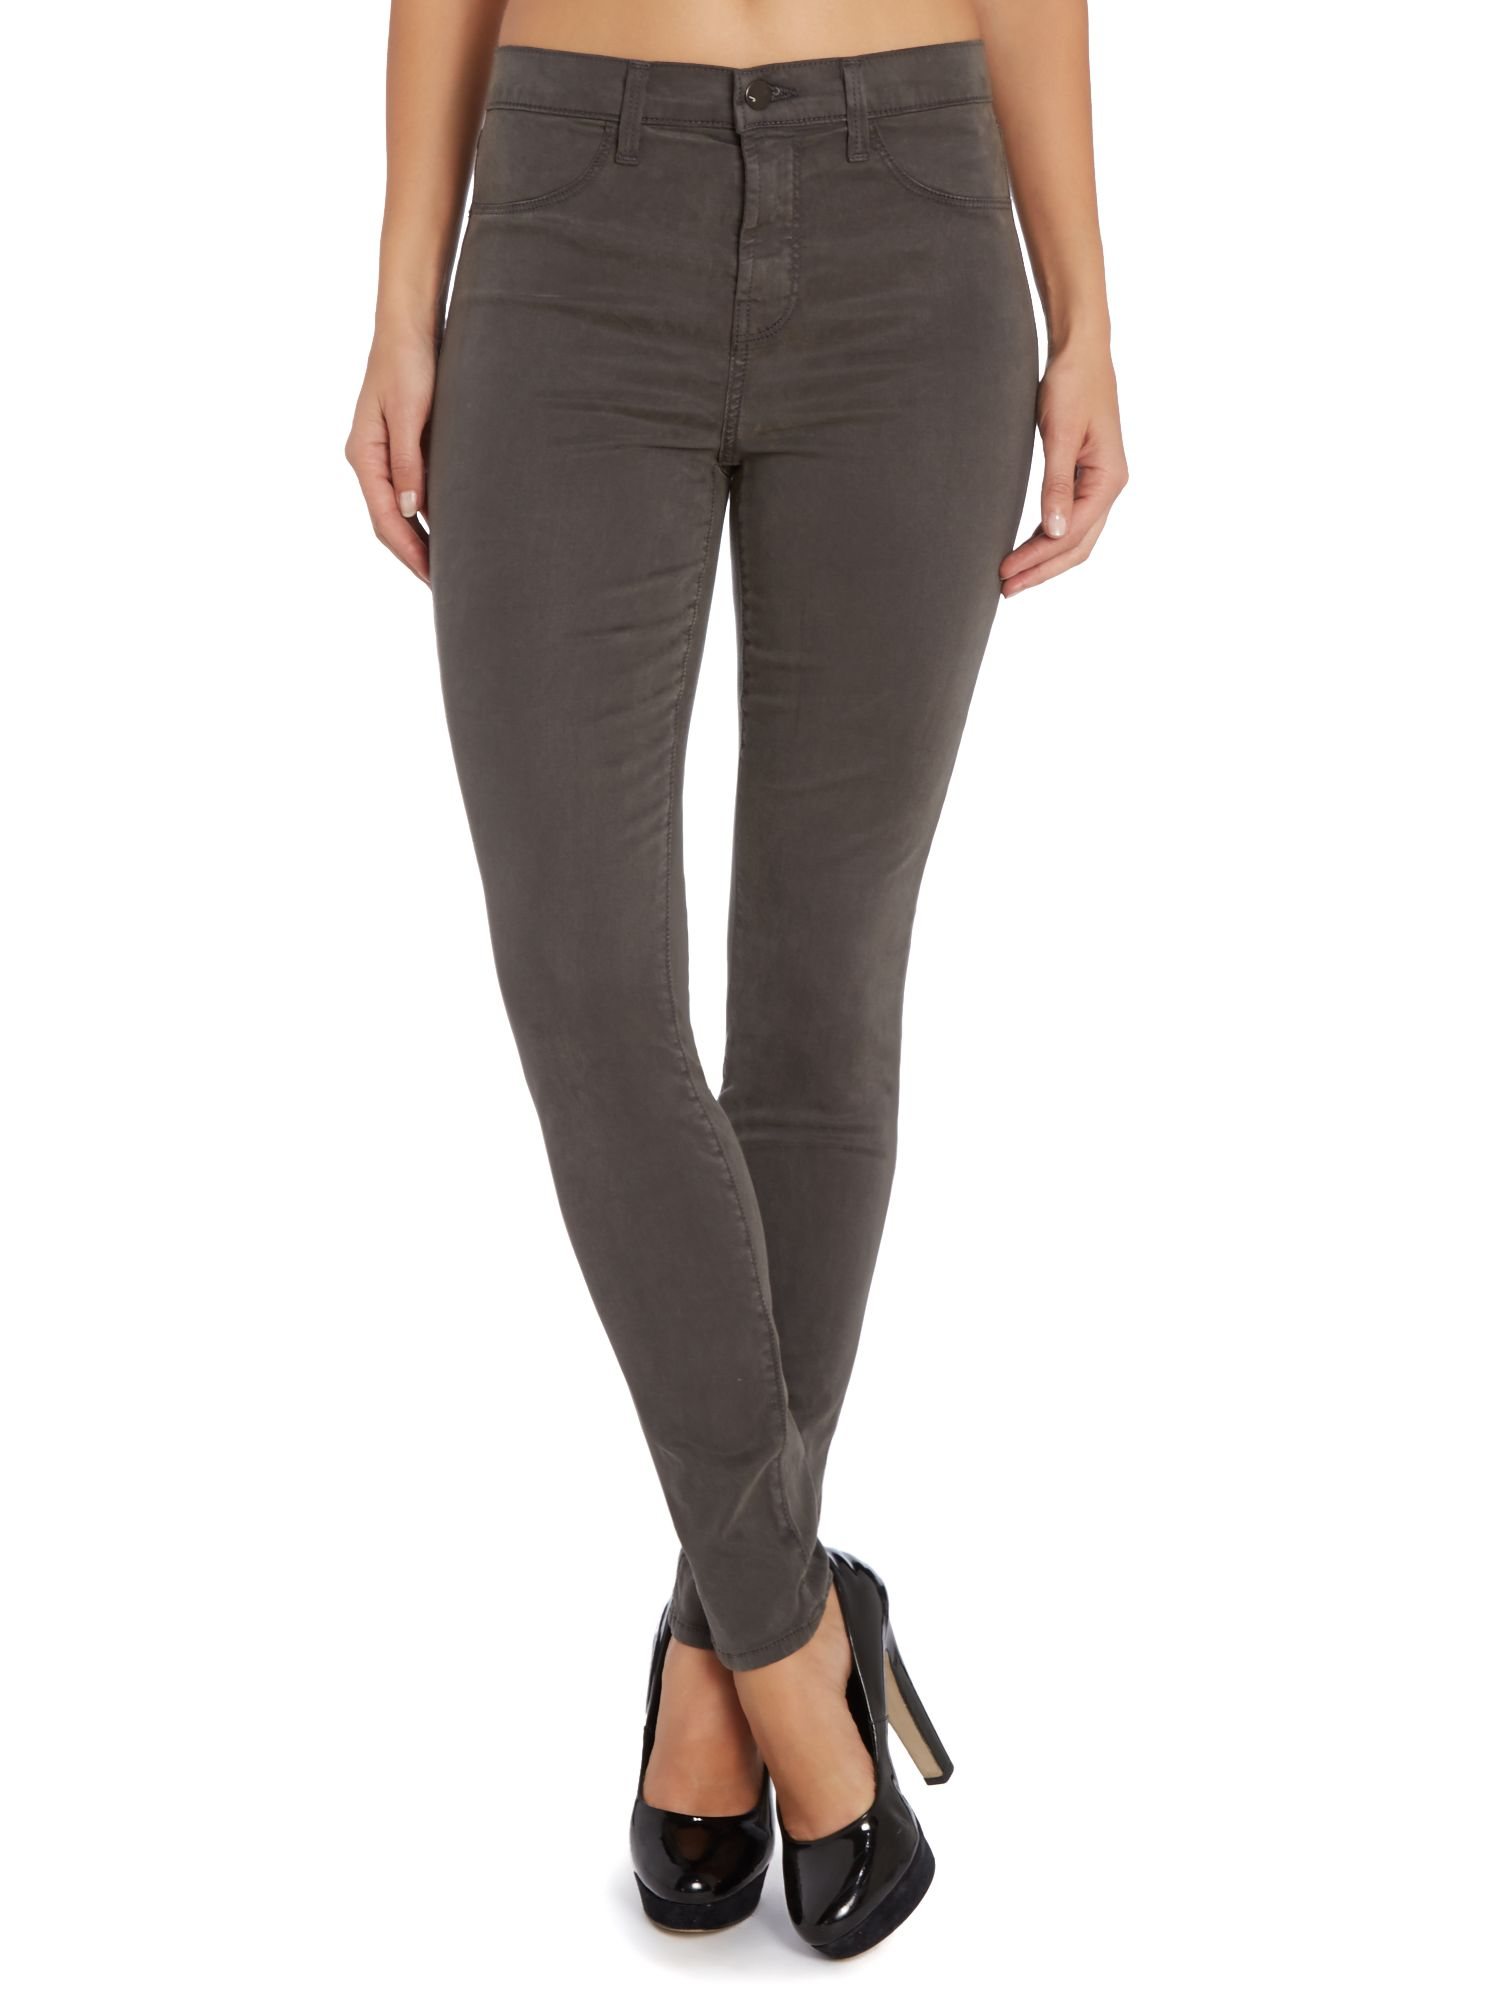 Maria high rise skinny jeans in armour